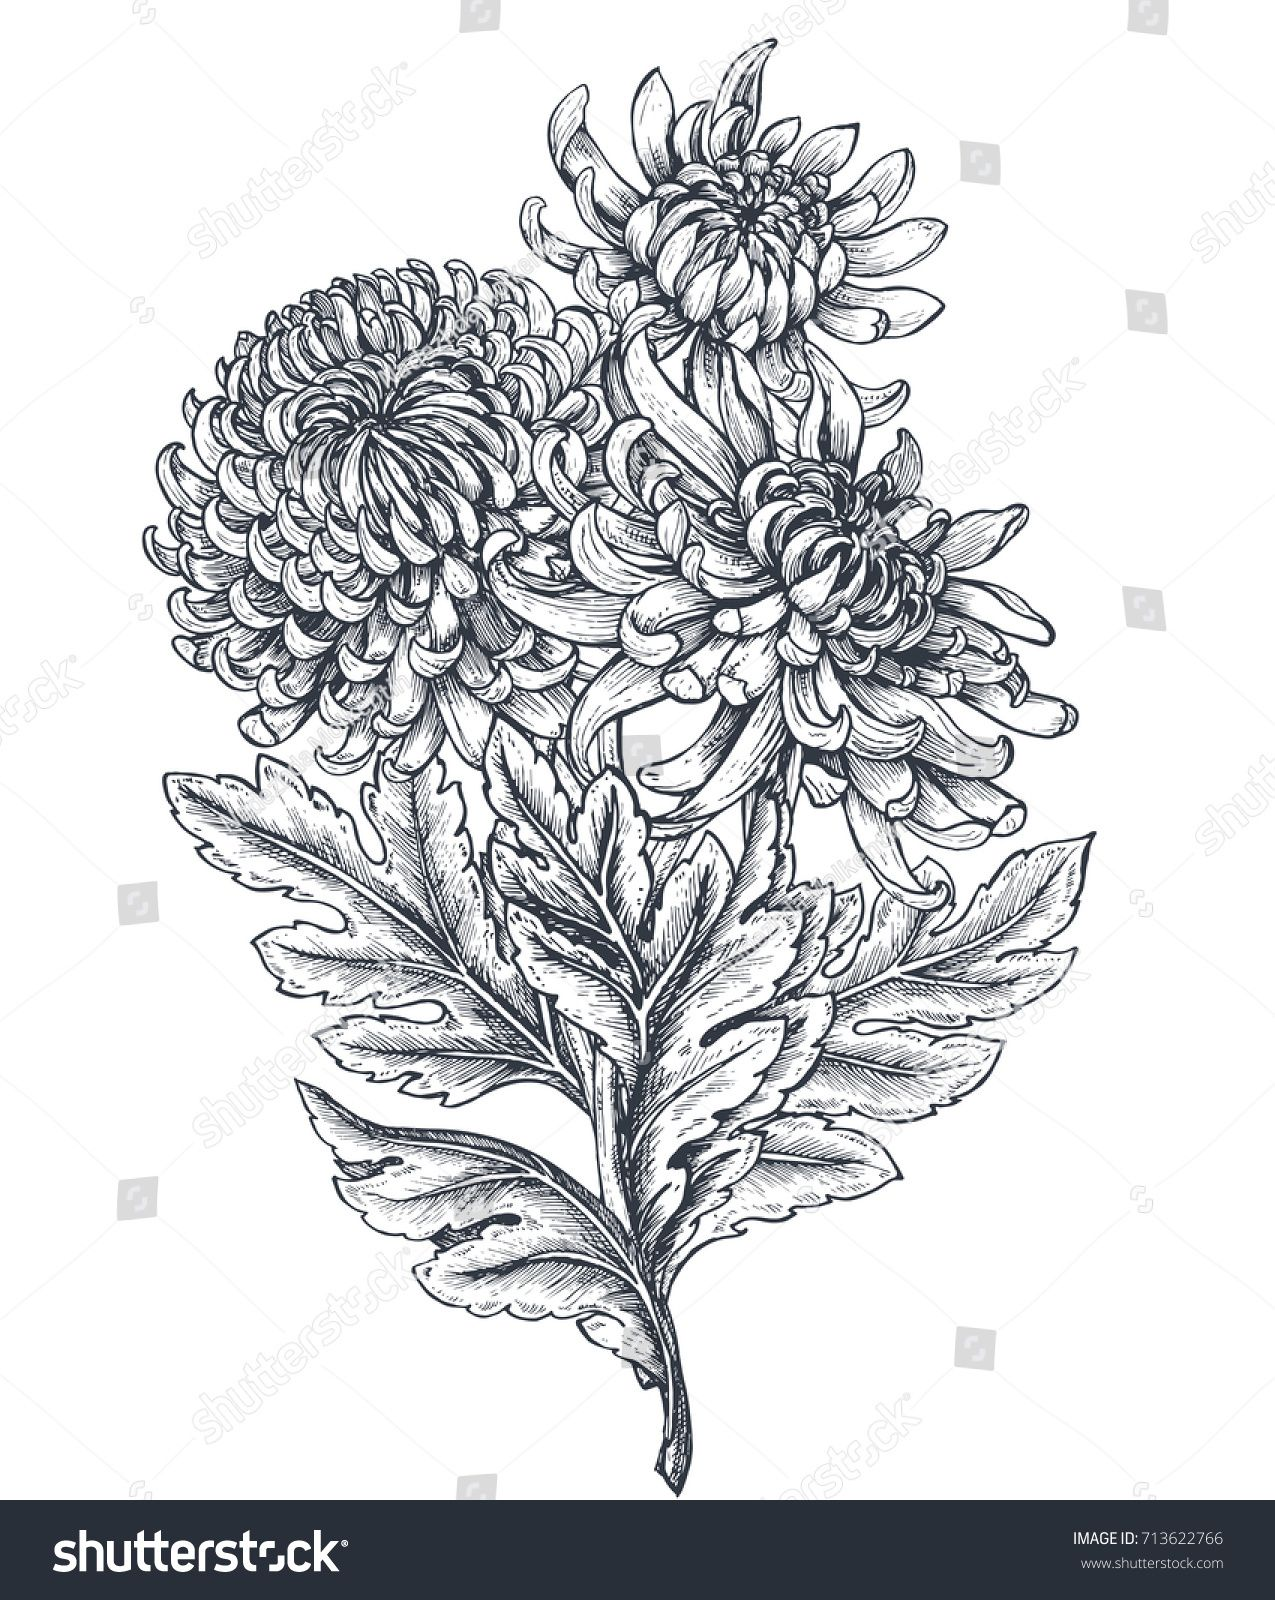 Vector Bouquet With Black And White Hand Drawn Chrysanthemum Flowers In Sketch Style Beautiful Floral Backgrou How To Draw Hands Drawings Chrysanthemum Tattoo